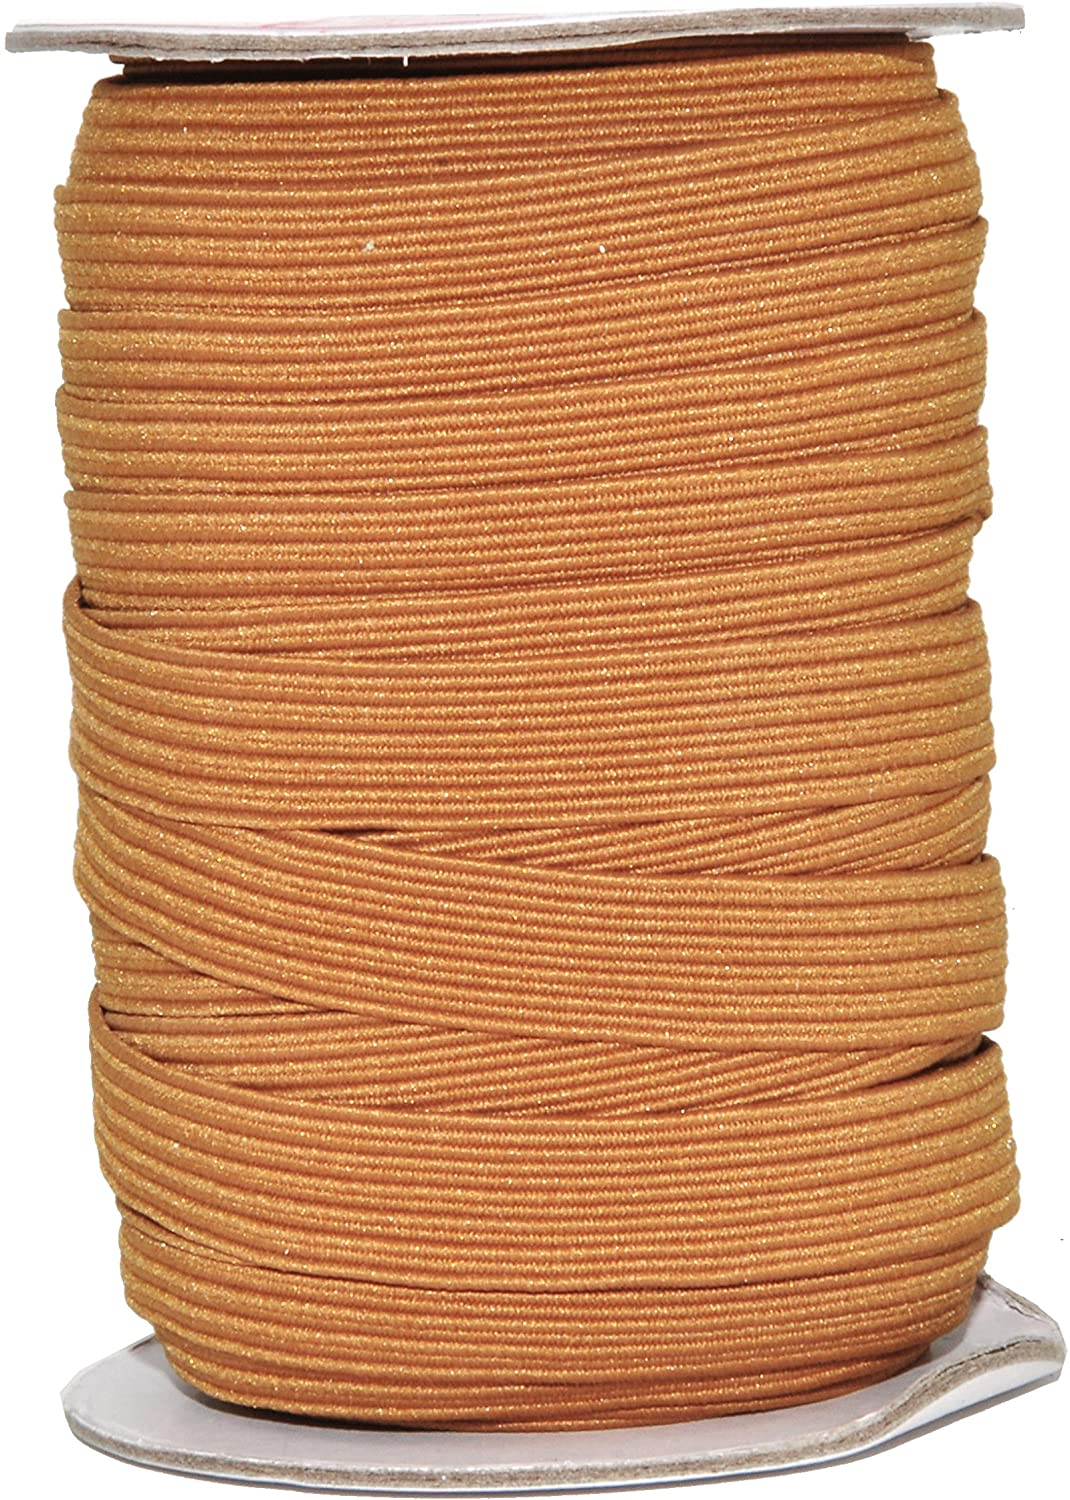 Mandala Crafts Flat Elastic Band, Braided Stretch Strap Cord Roll for Sewing and Crafting; 1/2 inch 12mm 20 Yards Russet Brown